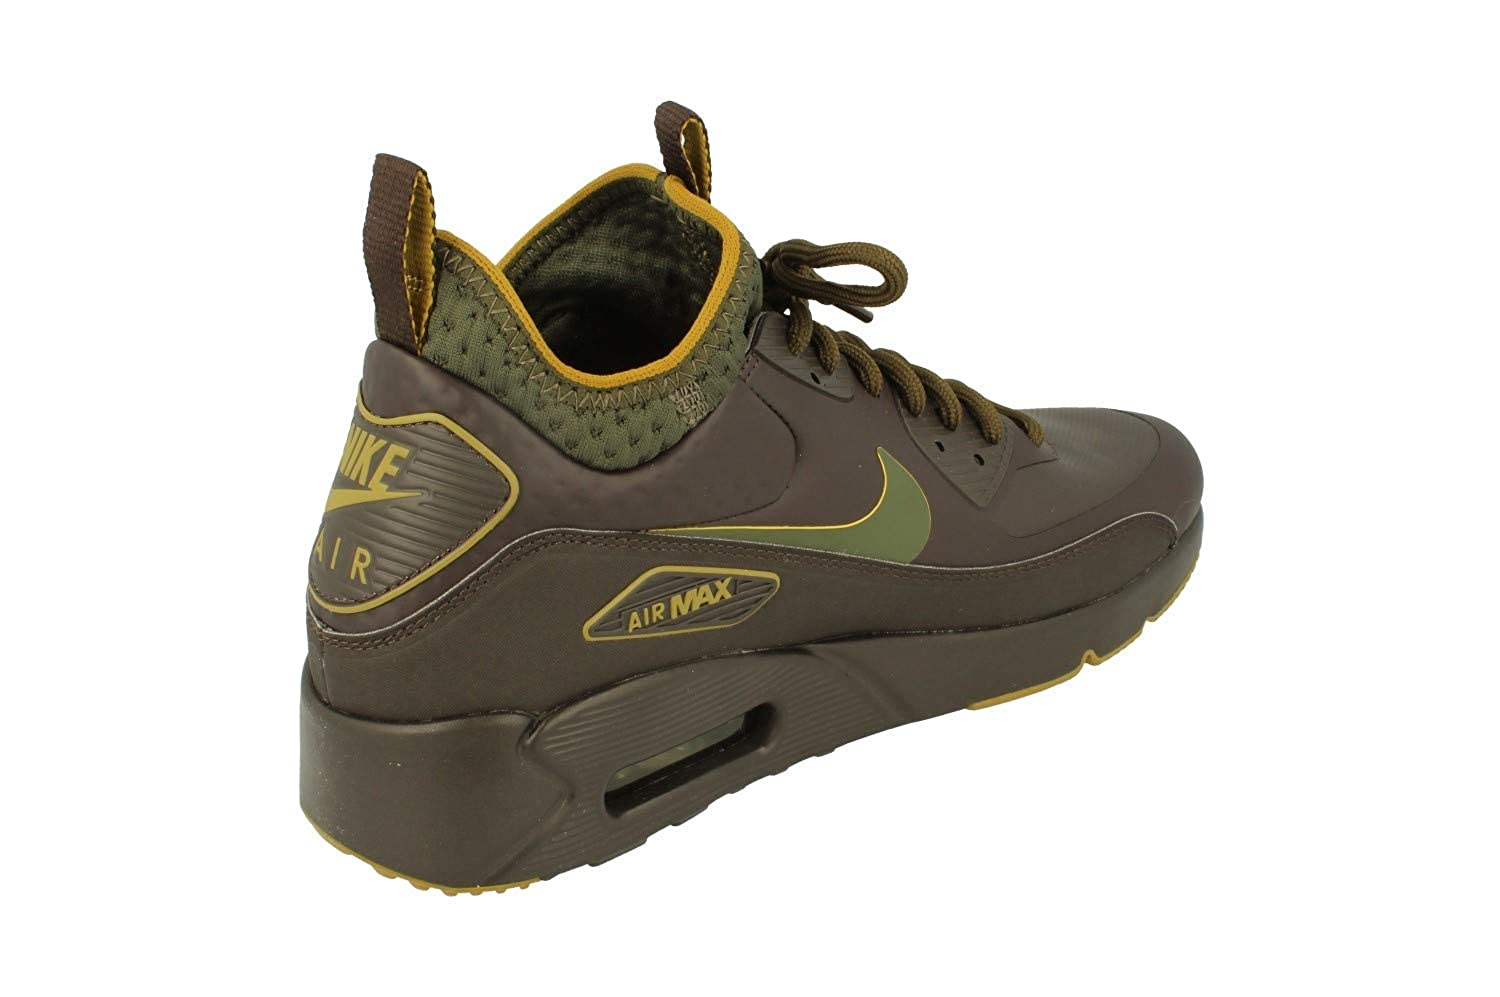 hot sale online e6c20 9fea2 Nike Air Max 90 Ultra Mid Winter SE Mens Hi Top Trainers AA4423 Sneakers  Shoes (UK 7.5 US 8.5 EU 42, Velvet Brown 200)  Amazon.co.uk  Shoes   Bags